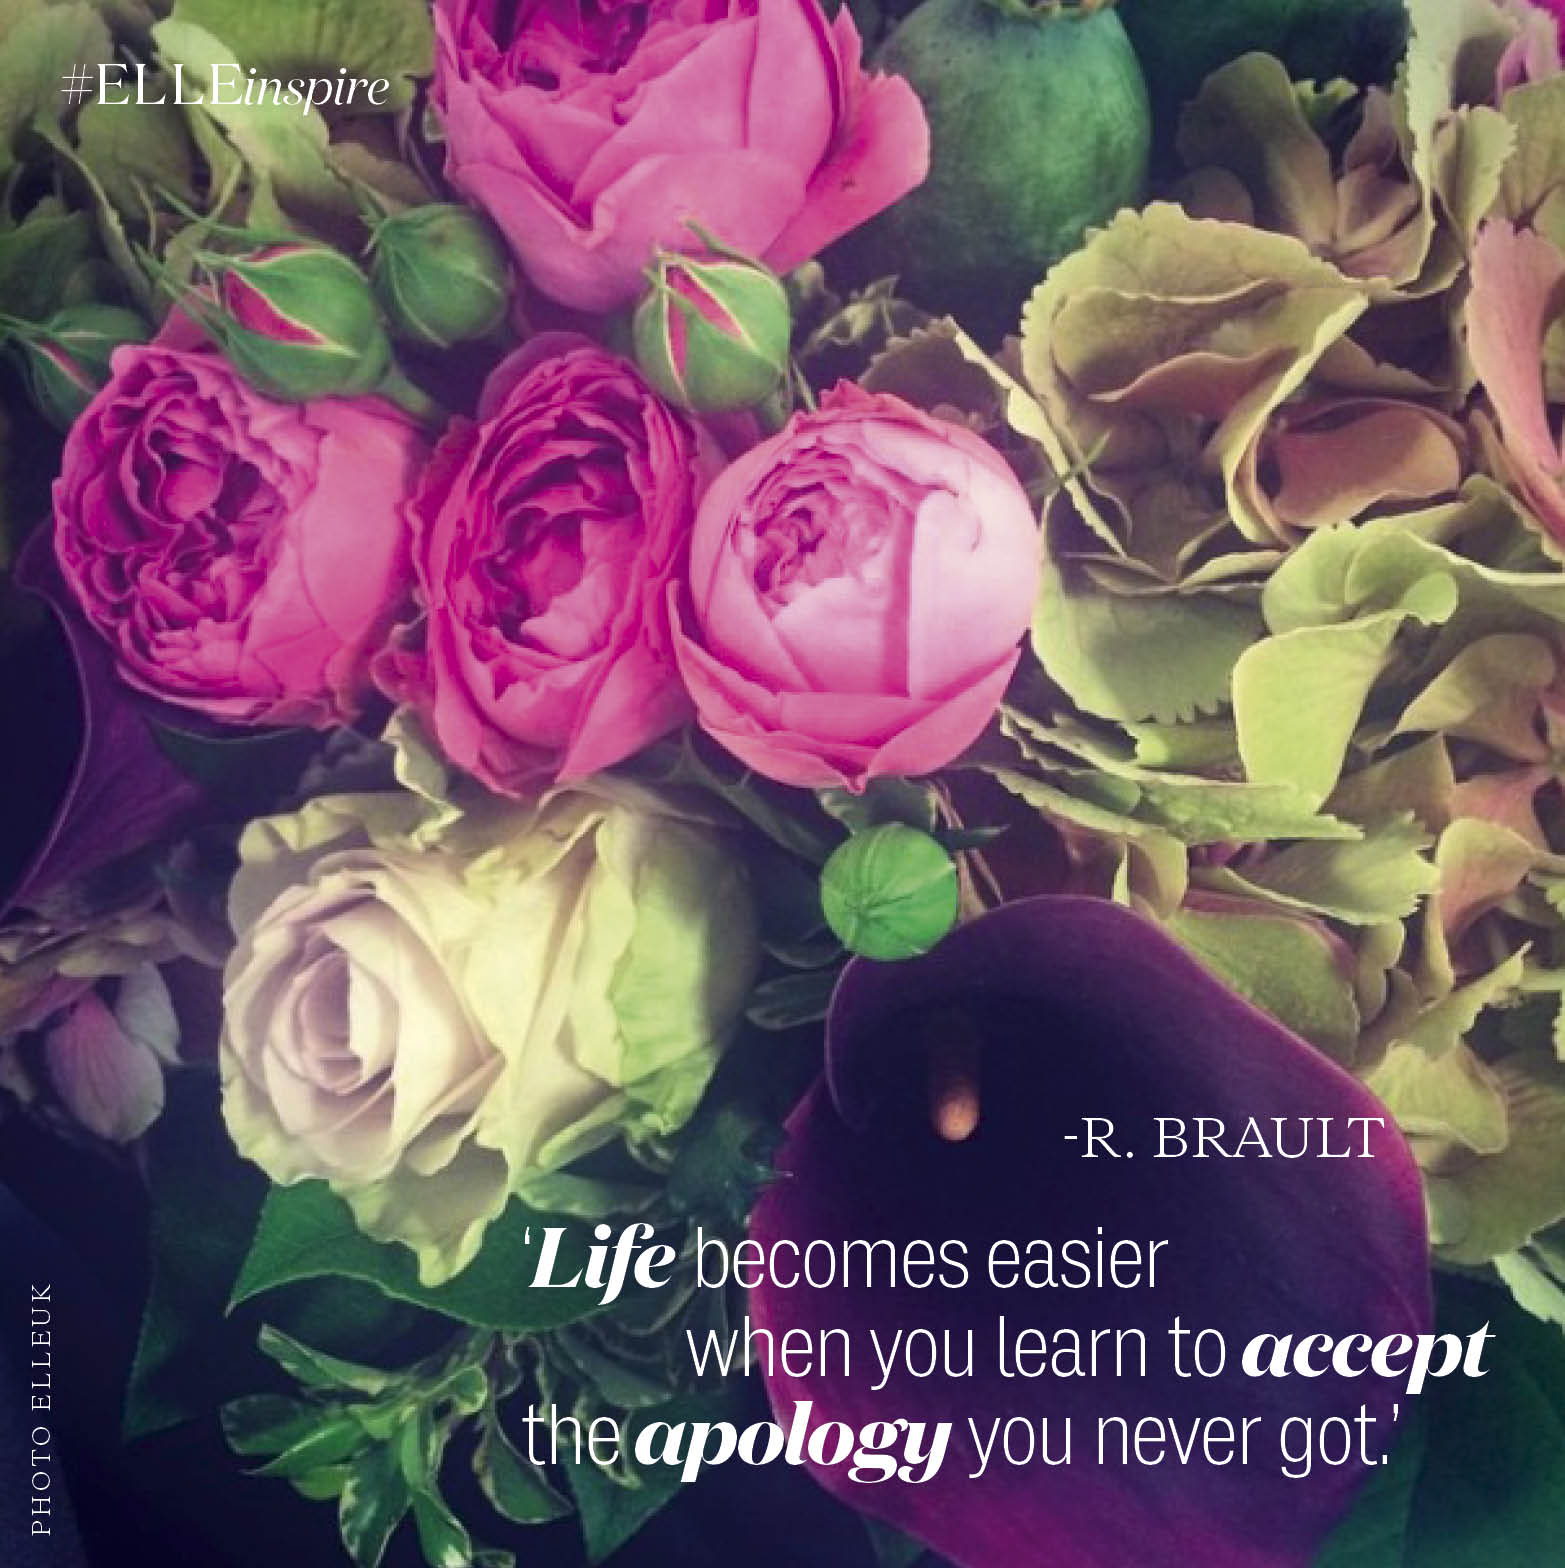 'Life becomes easier when you learn to accept the apology you never got.' #ELLEinspire http://t.co/AGhd5Dge6B http://t.co/HQbRrjXzwK